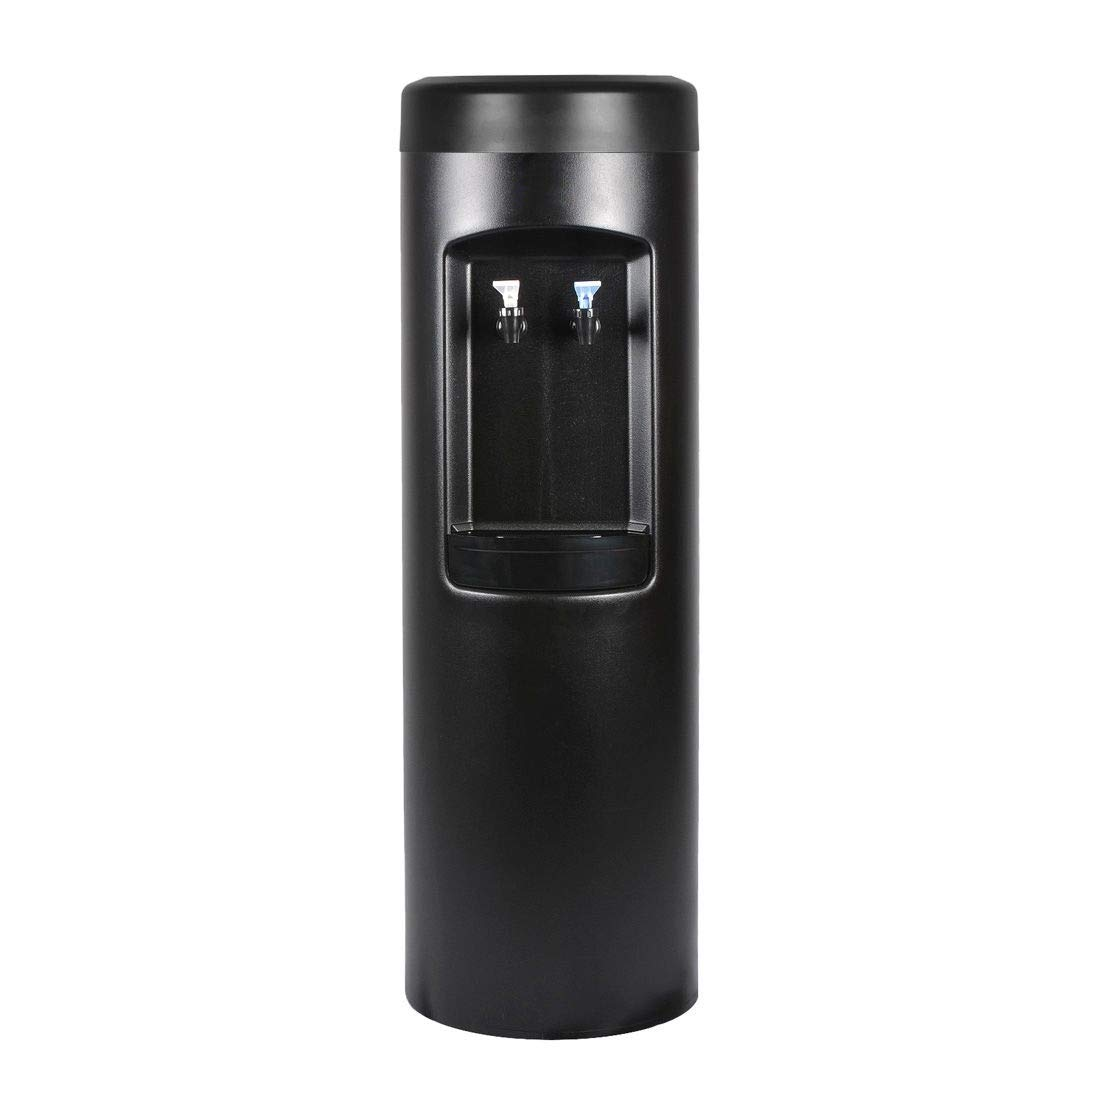 Black Bottleless Direct Water Purification Cooler with 1,500-gallon Capacity Water Filtration System and Installation Kit. Dispenses Room-Temp & Cold Water Dispenser. (Also Available in White)